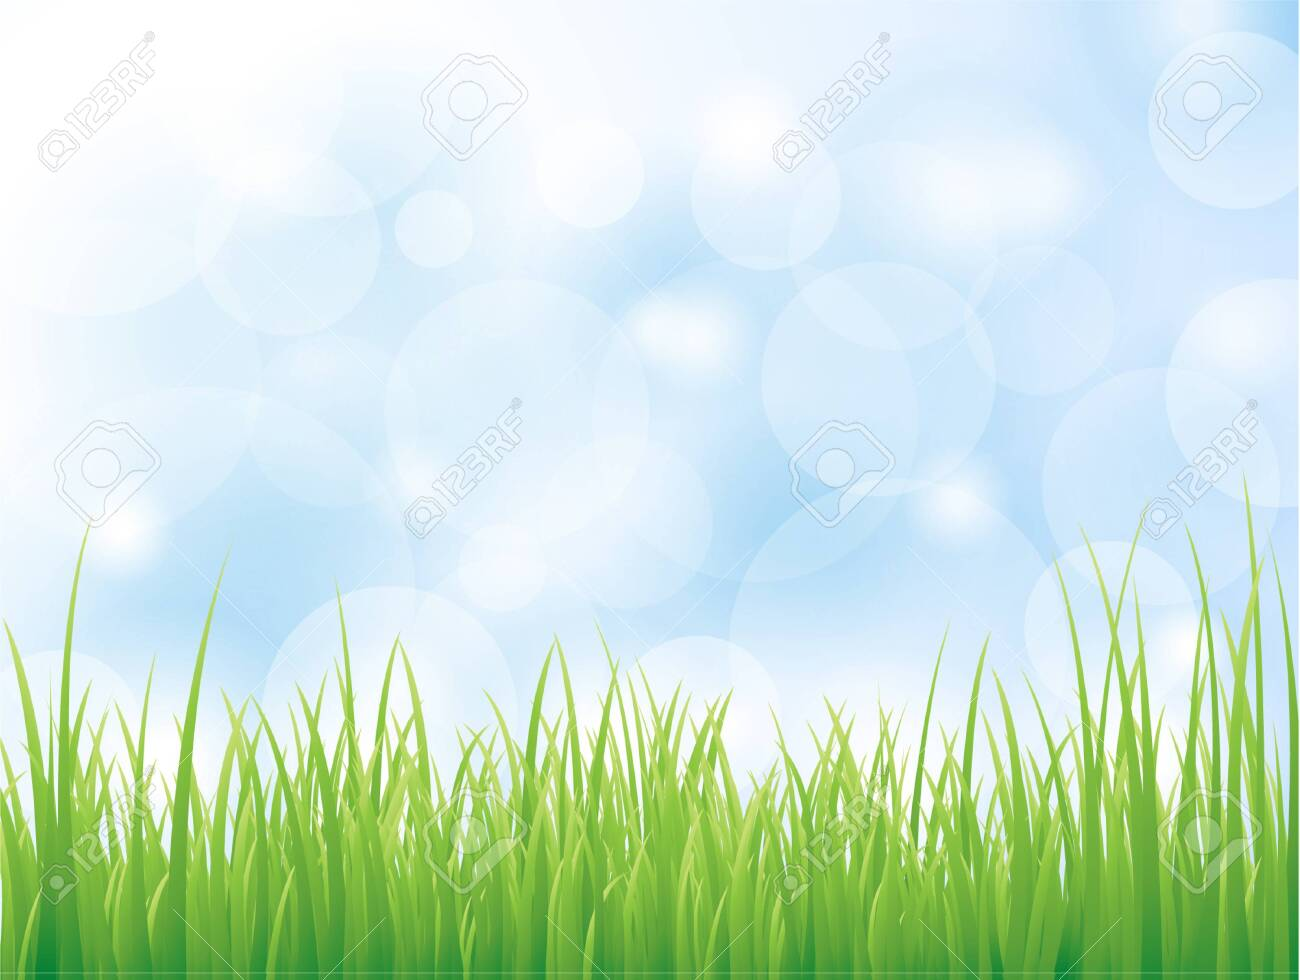 Vector background with green grass - 150587233